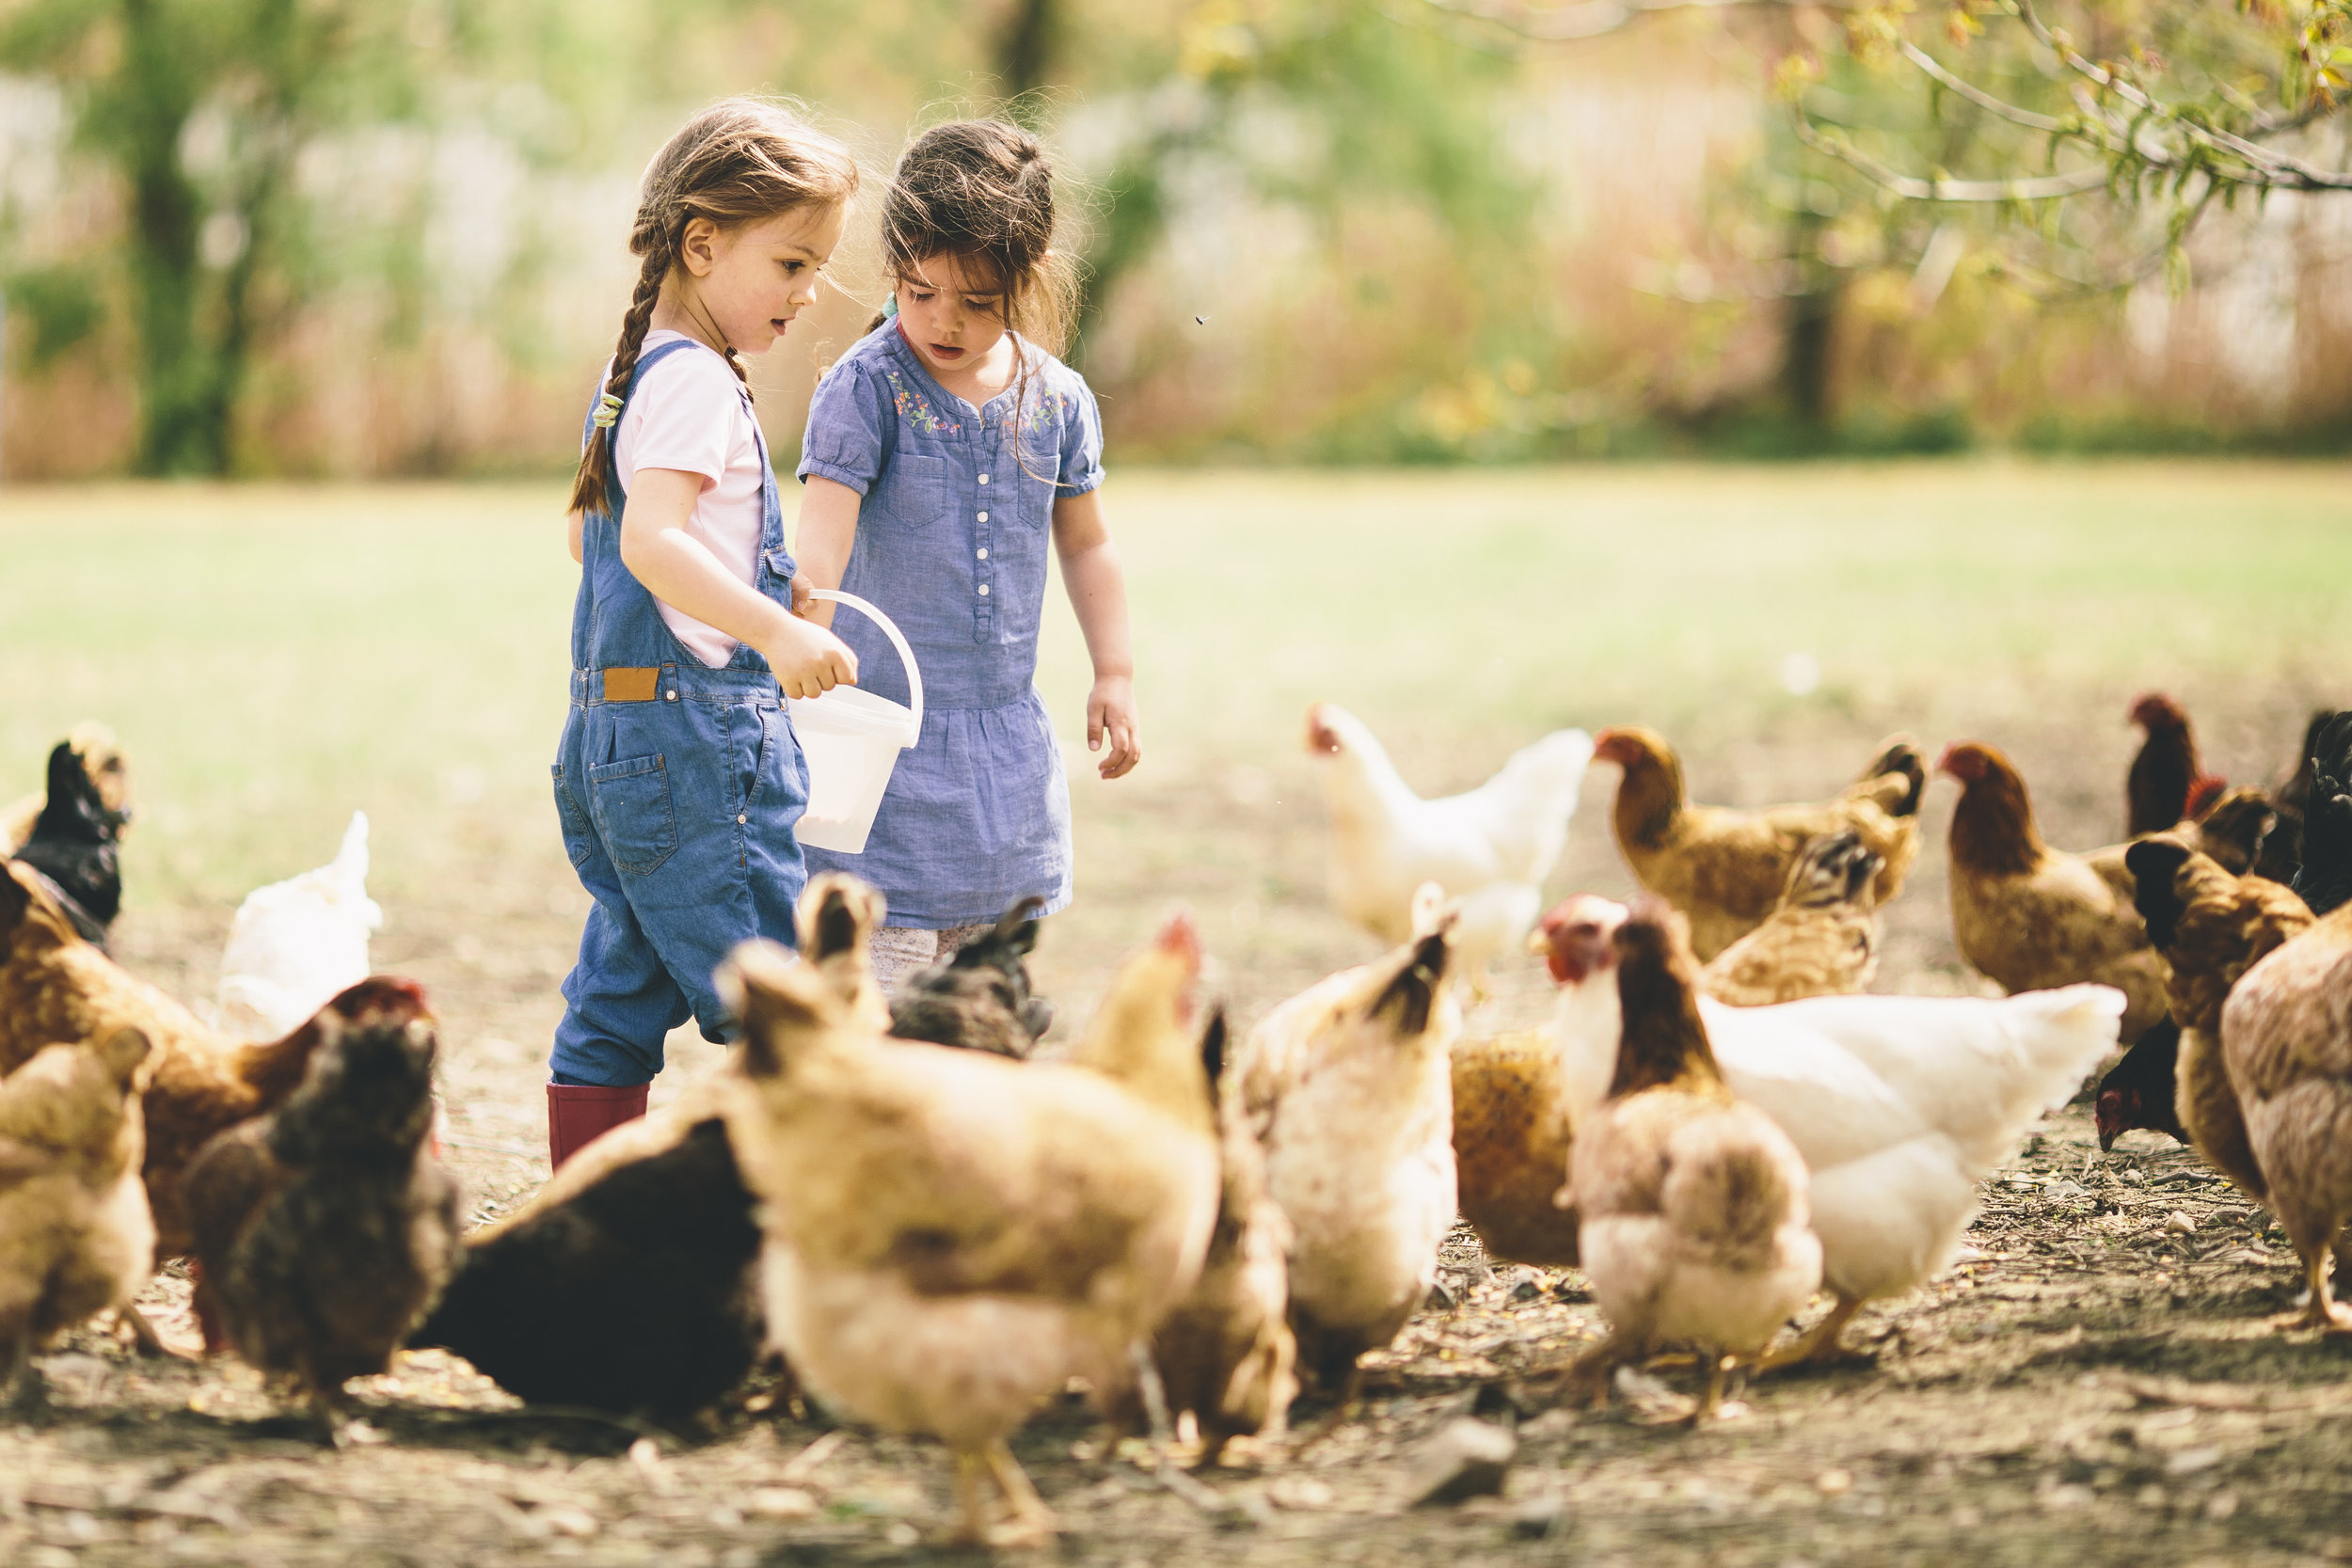 Farm To Table #4: Poultry Roast - July 13th 20195 pm